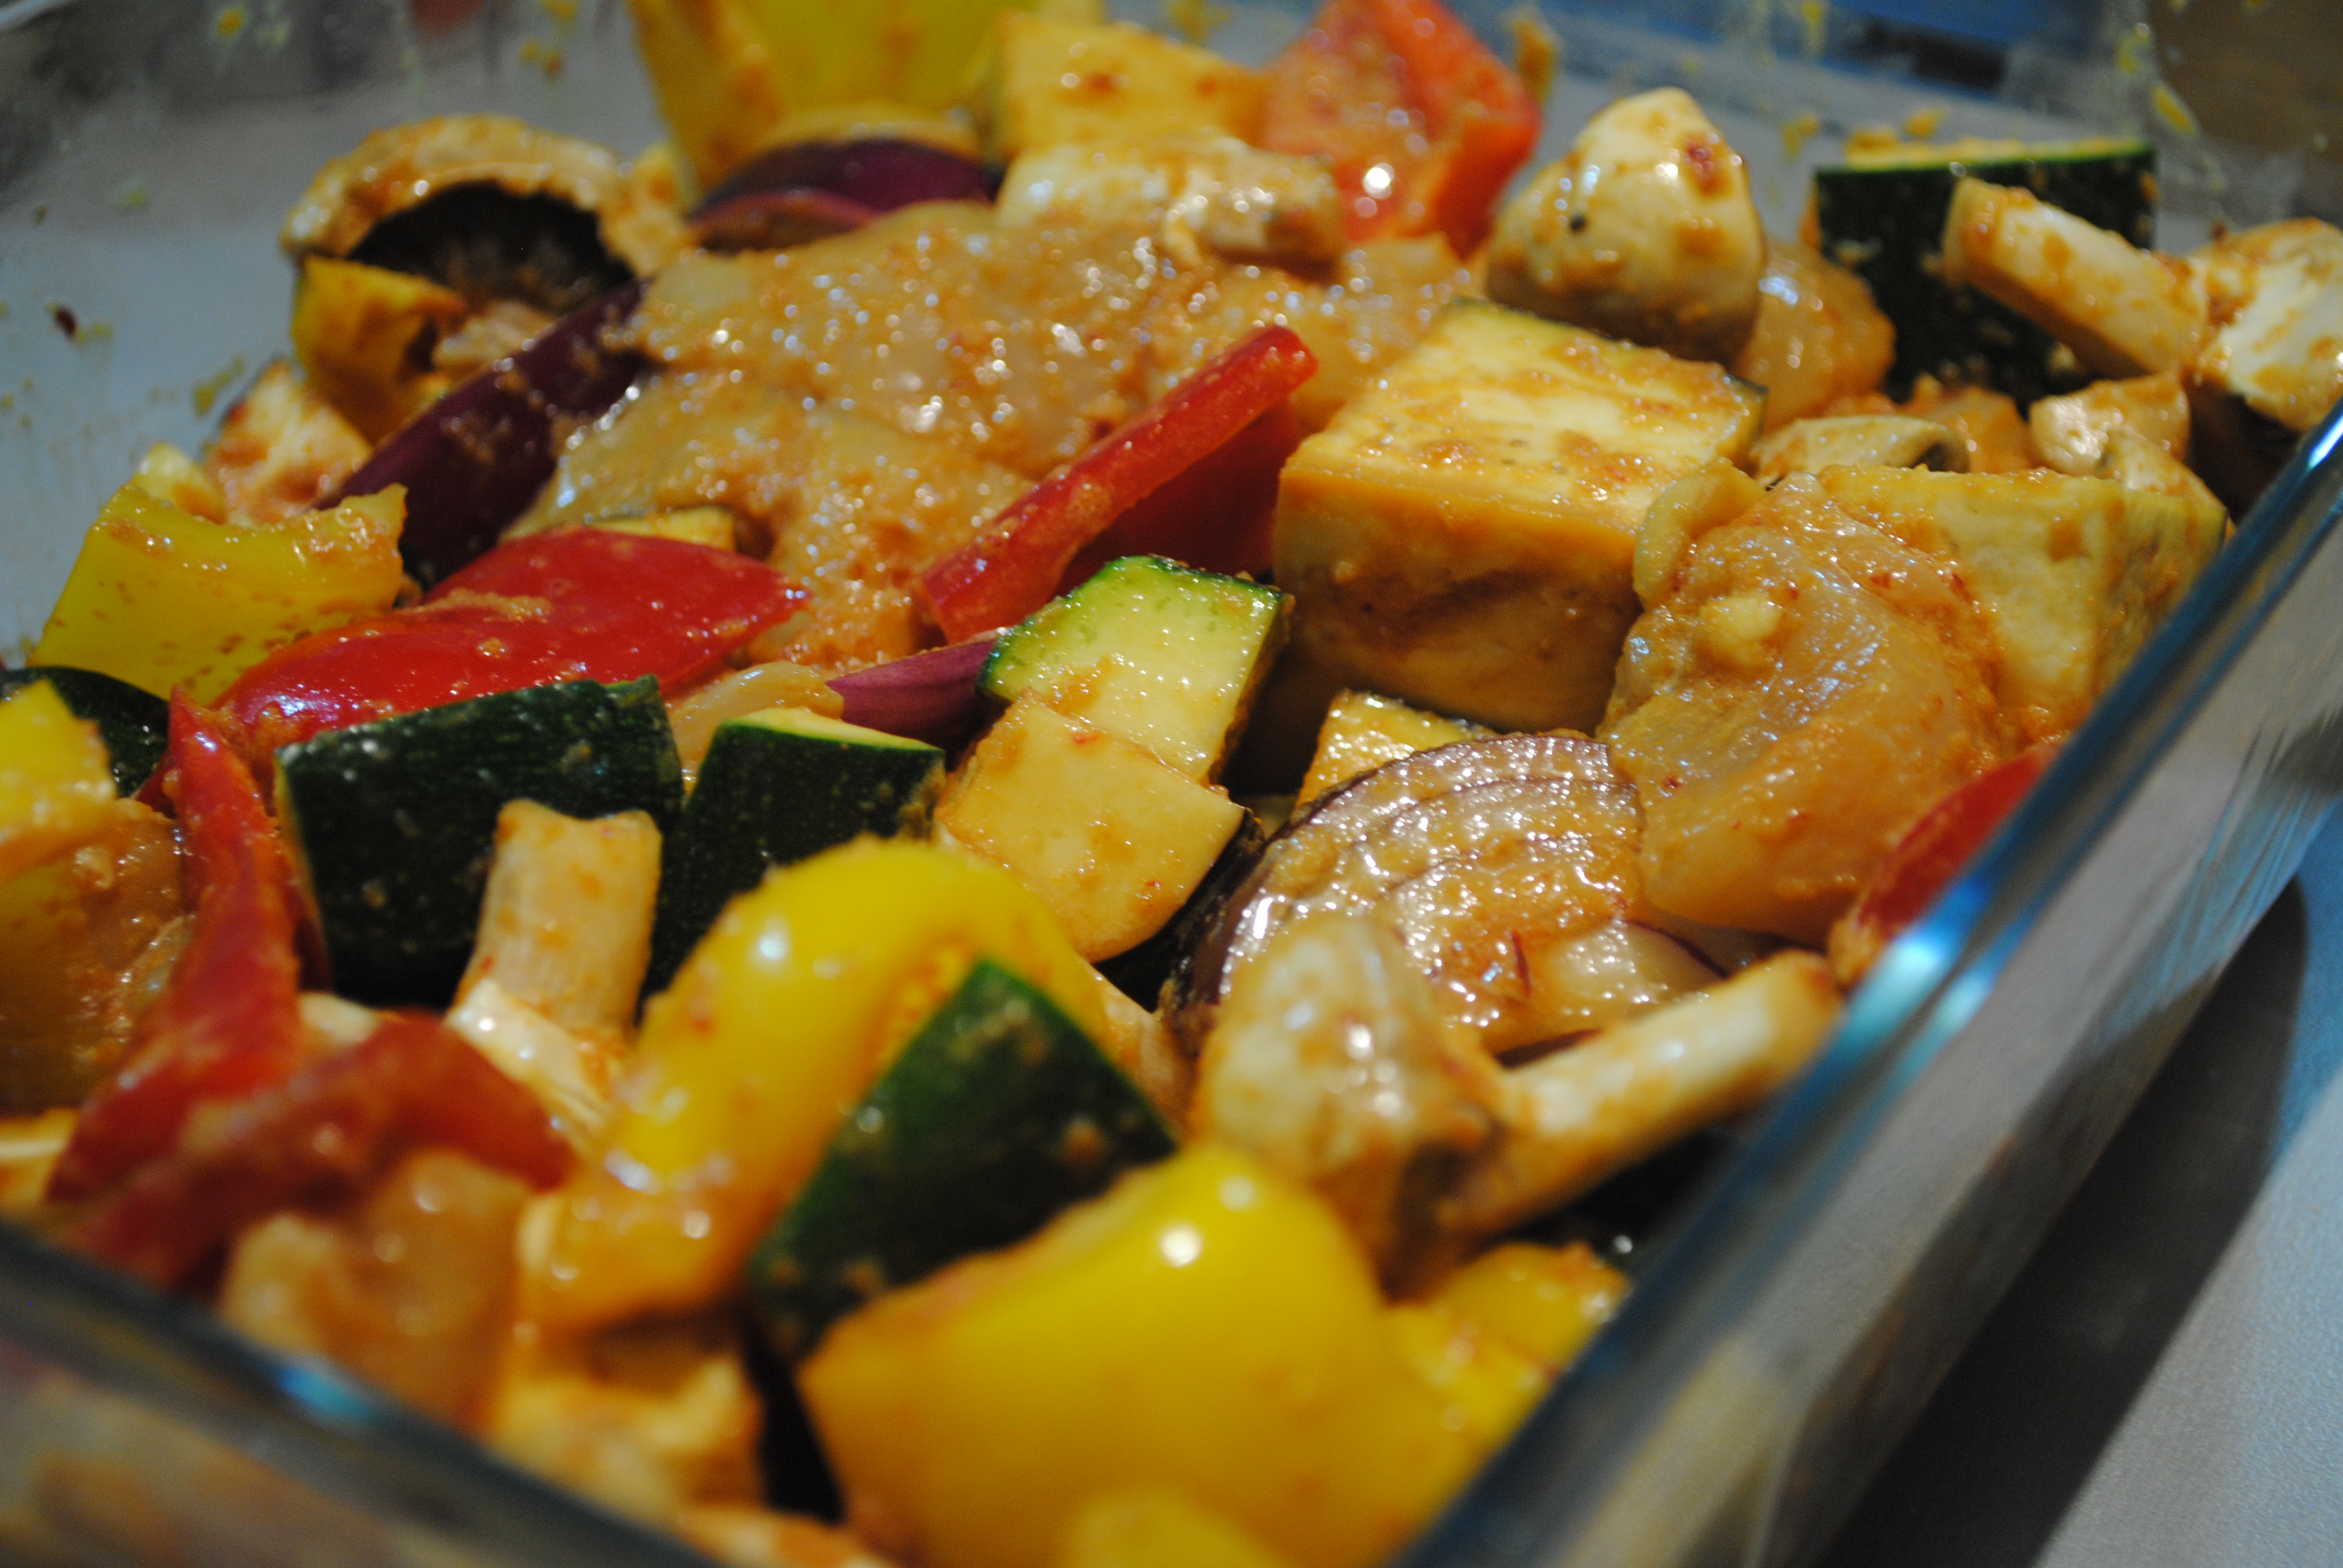 Vegetable chunks and chicken in marinade